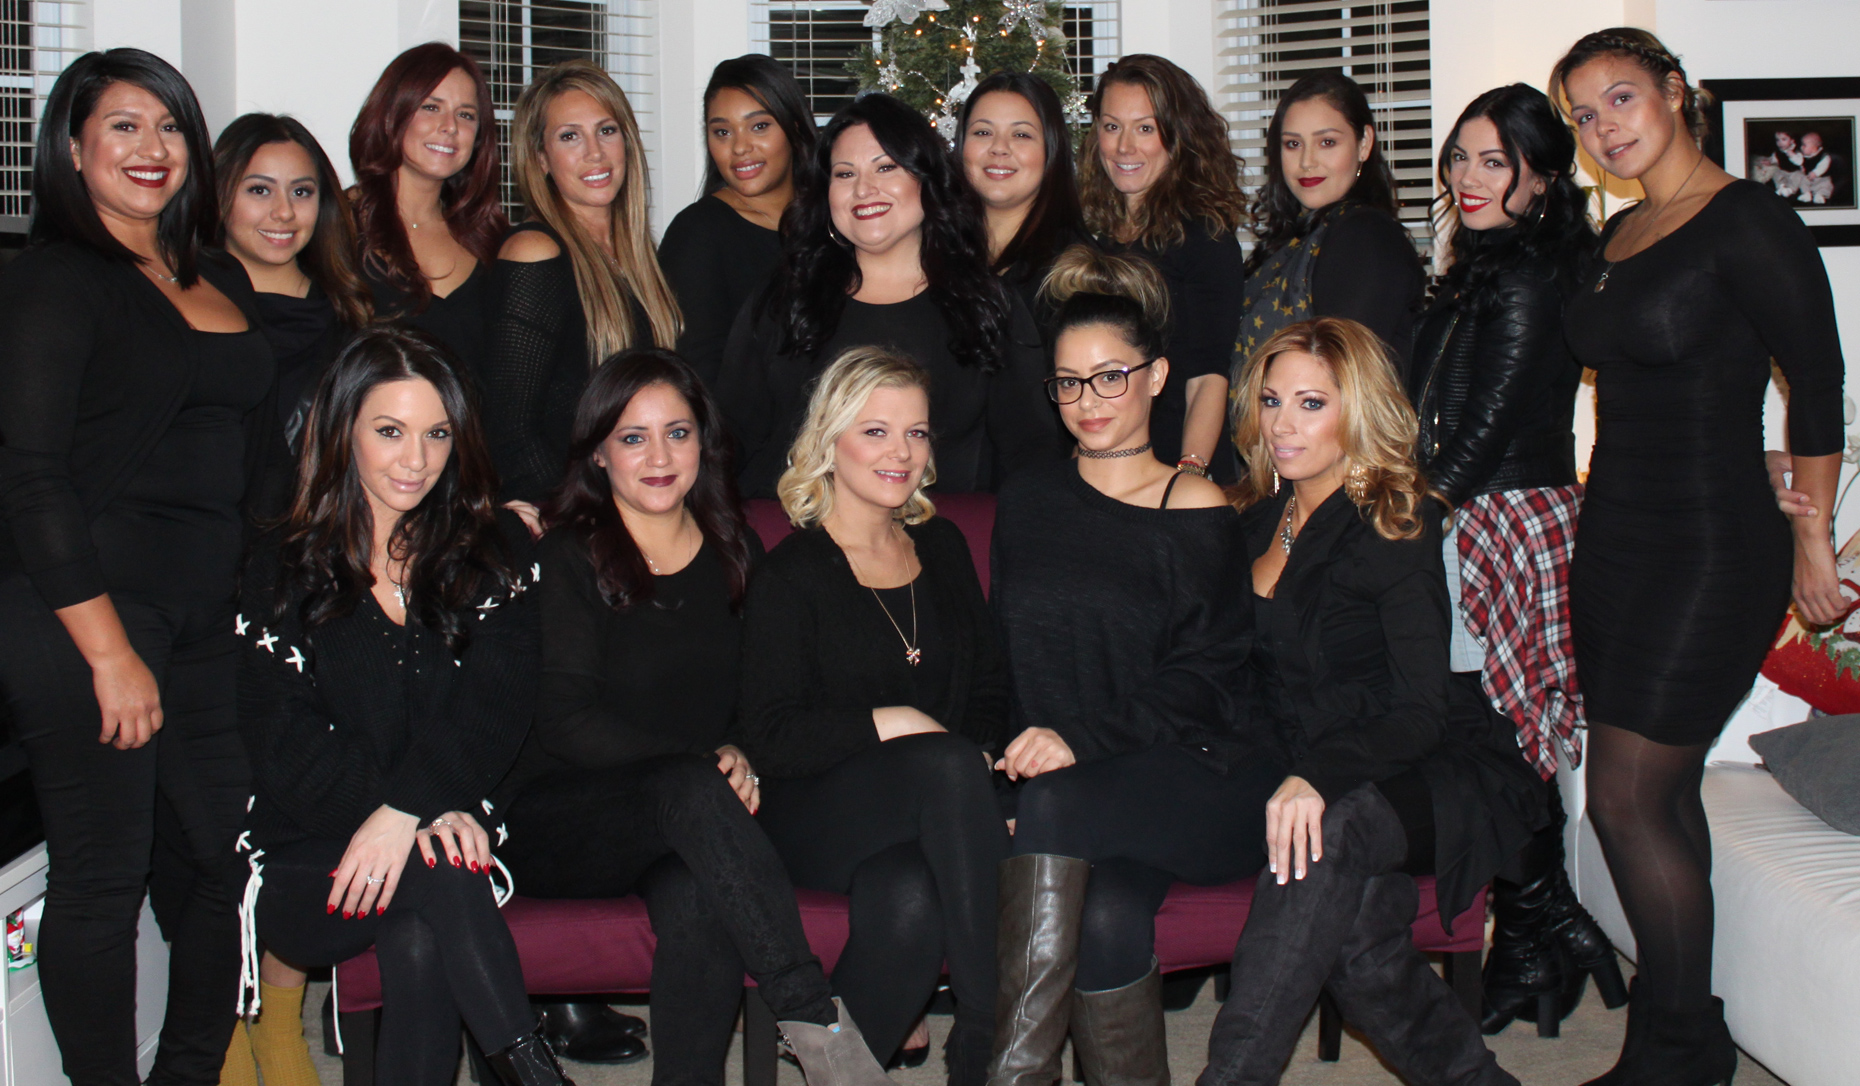 Victoria De Los Rios And Her Team Of Award Winning Makeup Hair Artists